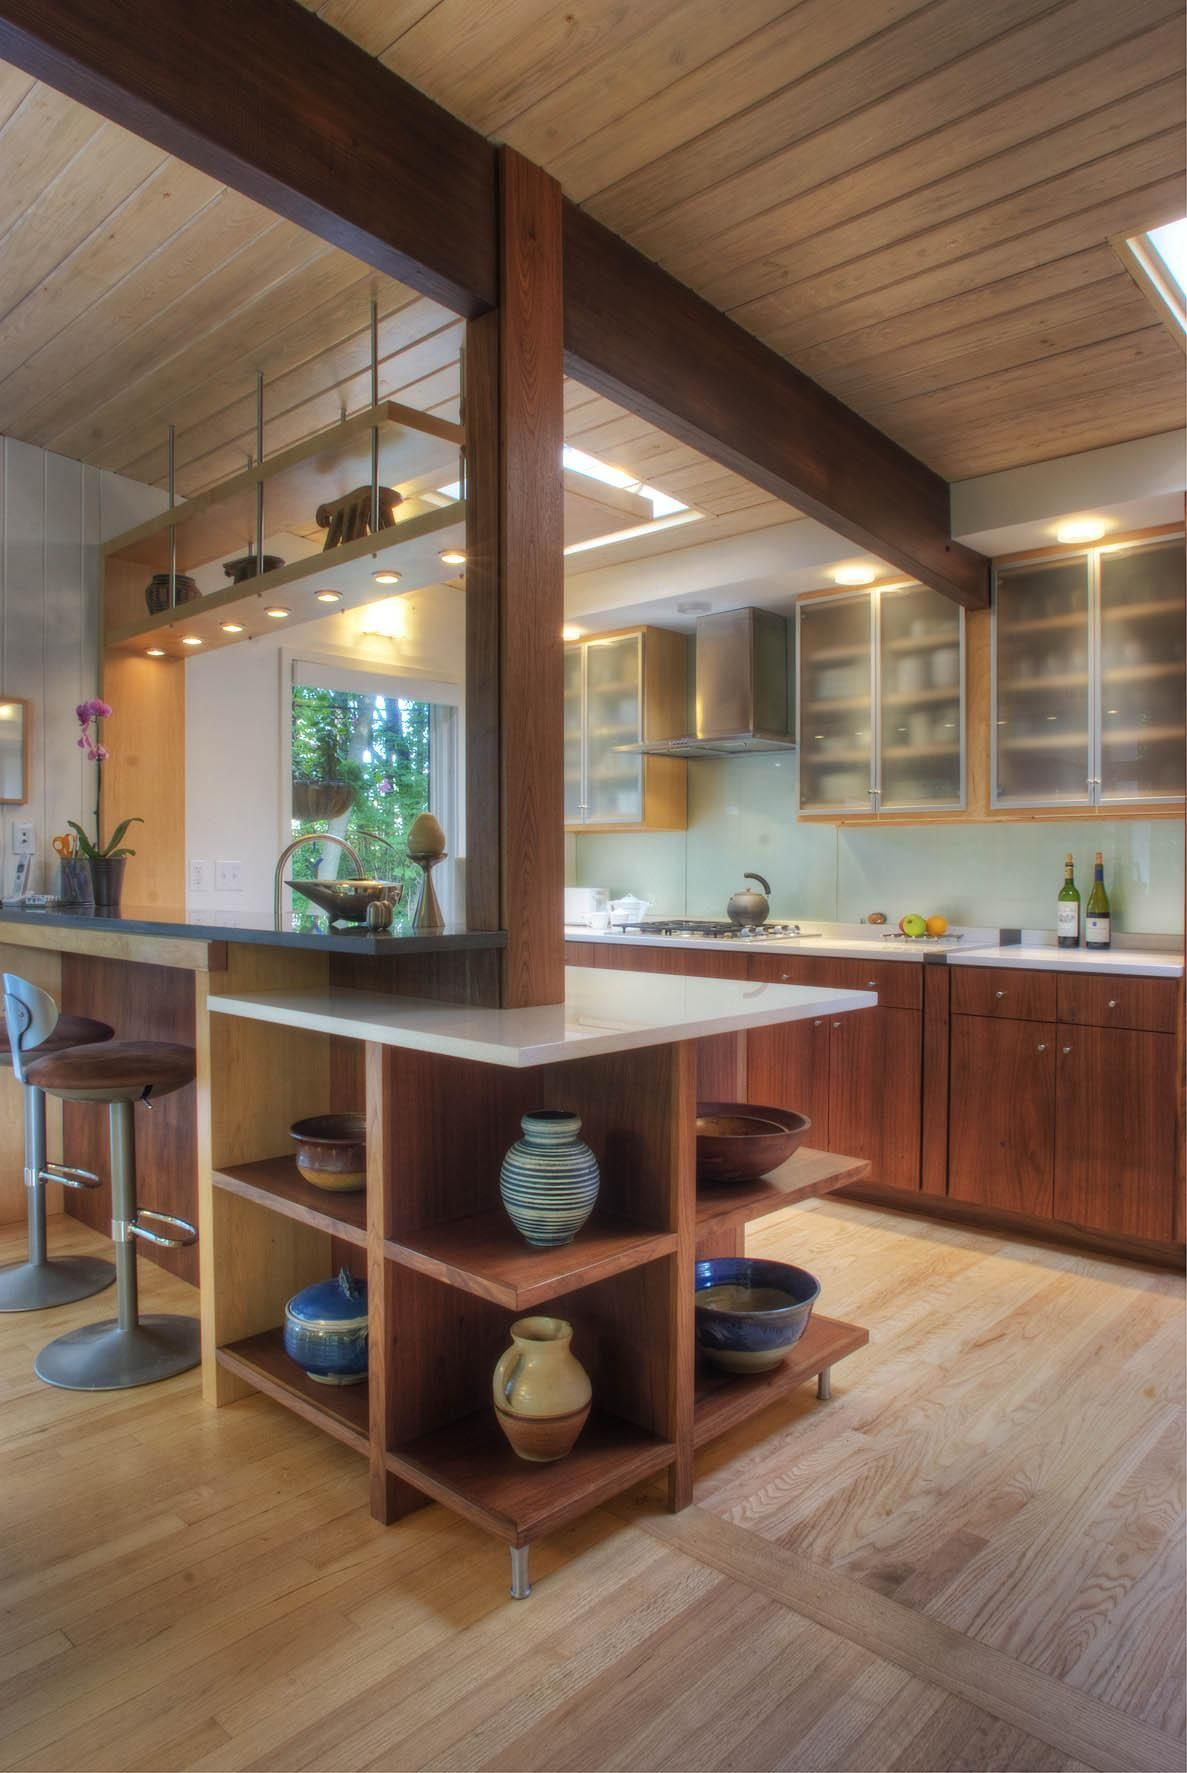 Charming Mid Century Kitchen Designs That Will Take You Back To The Vintage Mid Century Modern Kitchen Design Mid Century Modern Kitchen Modern Kitchen Design